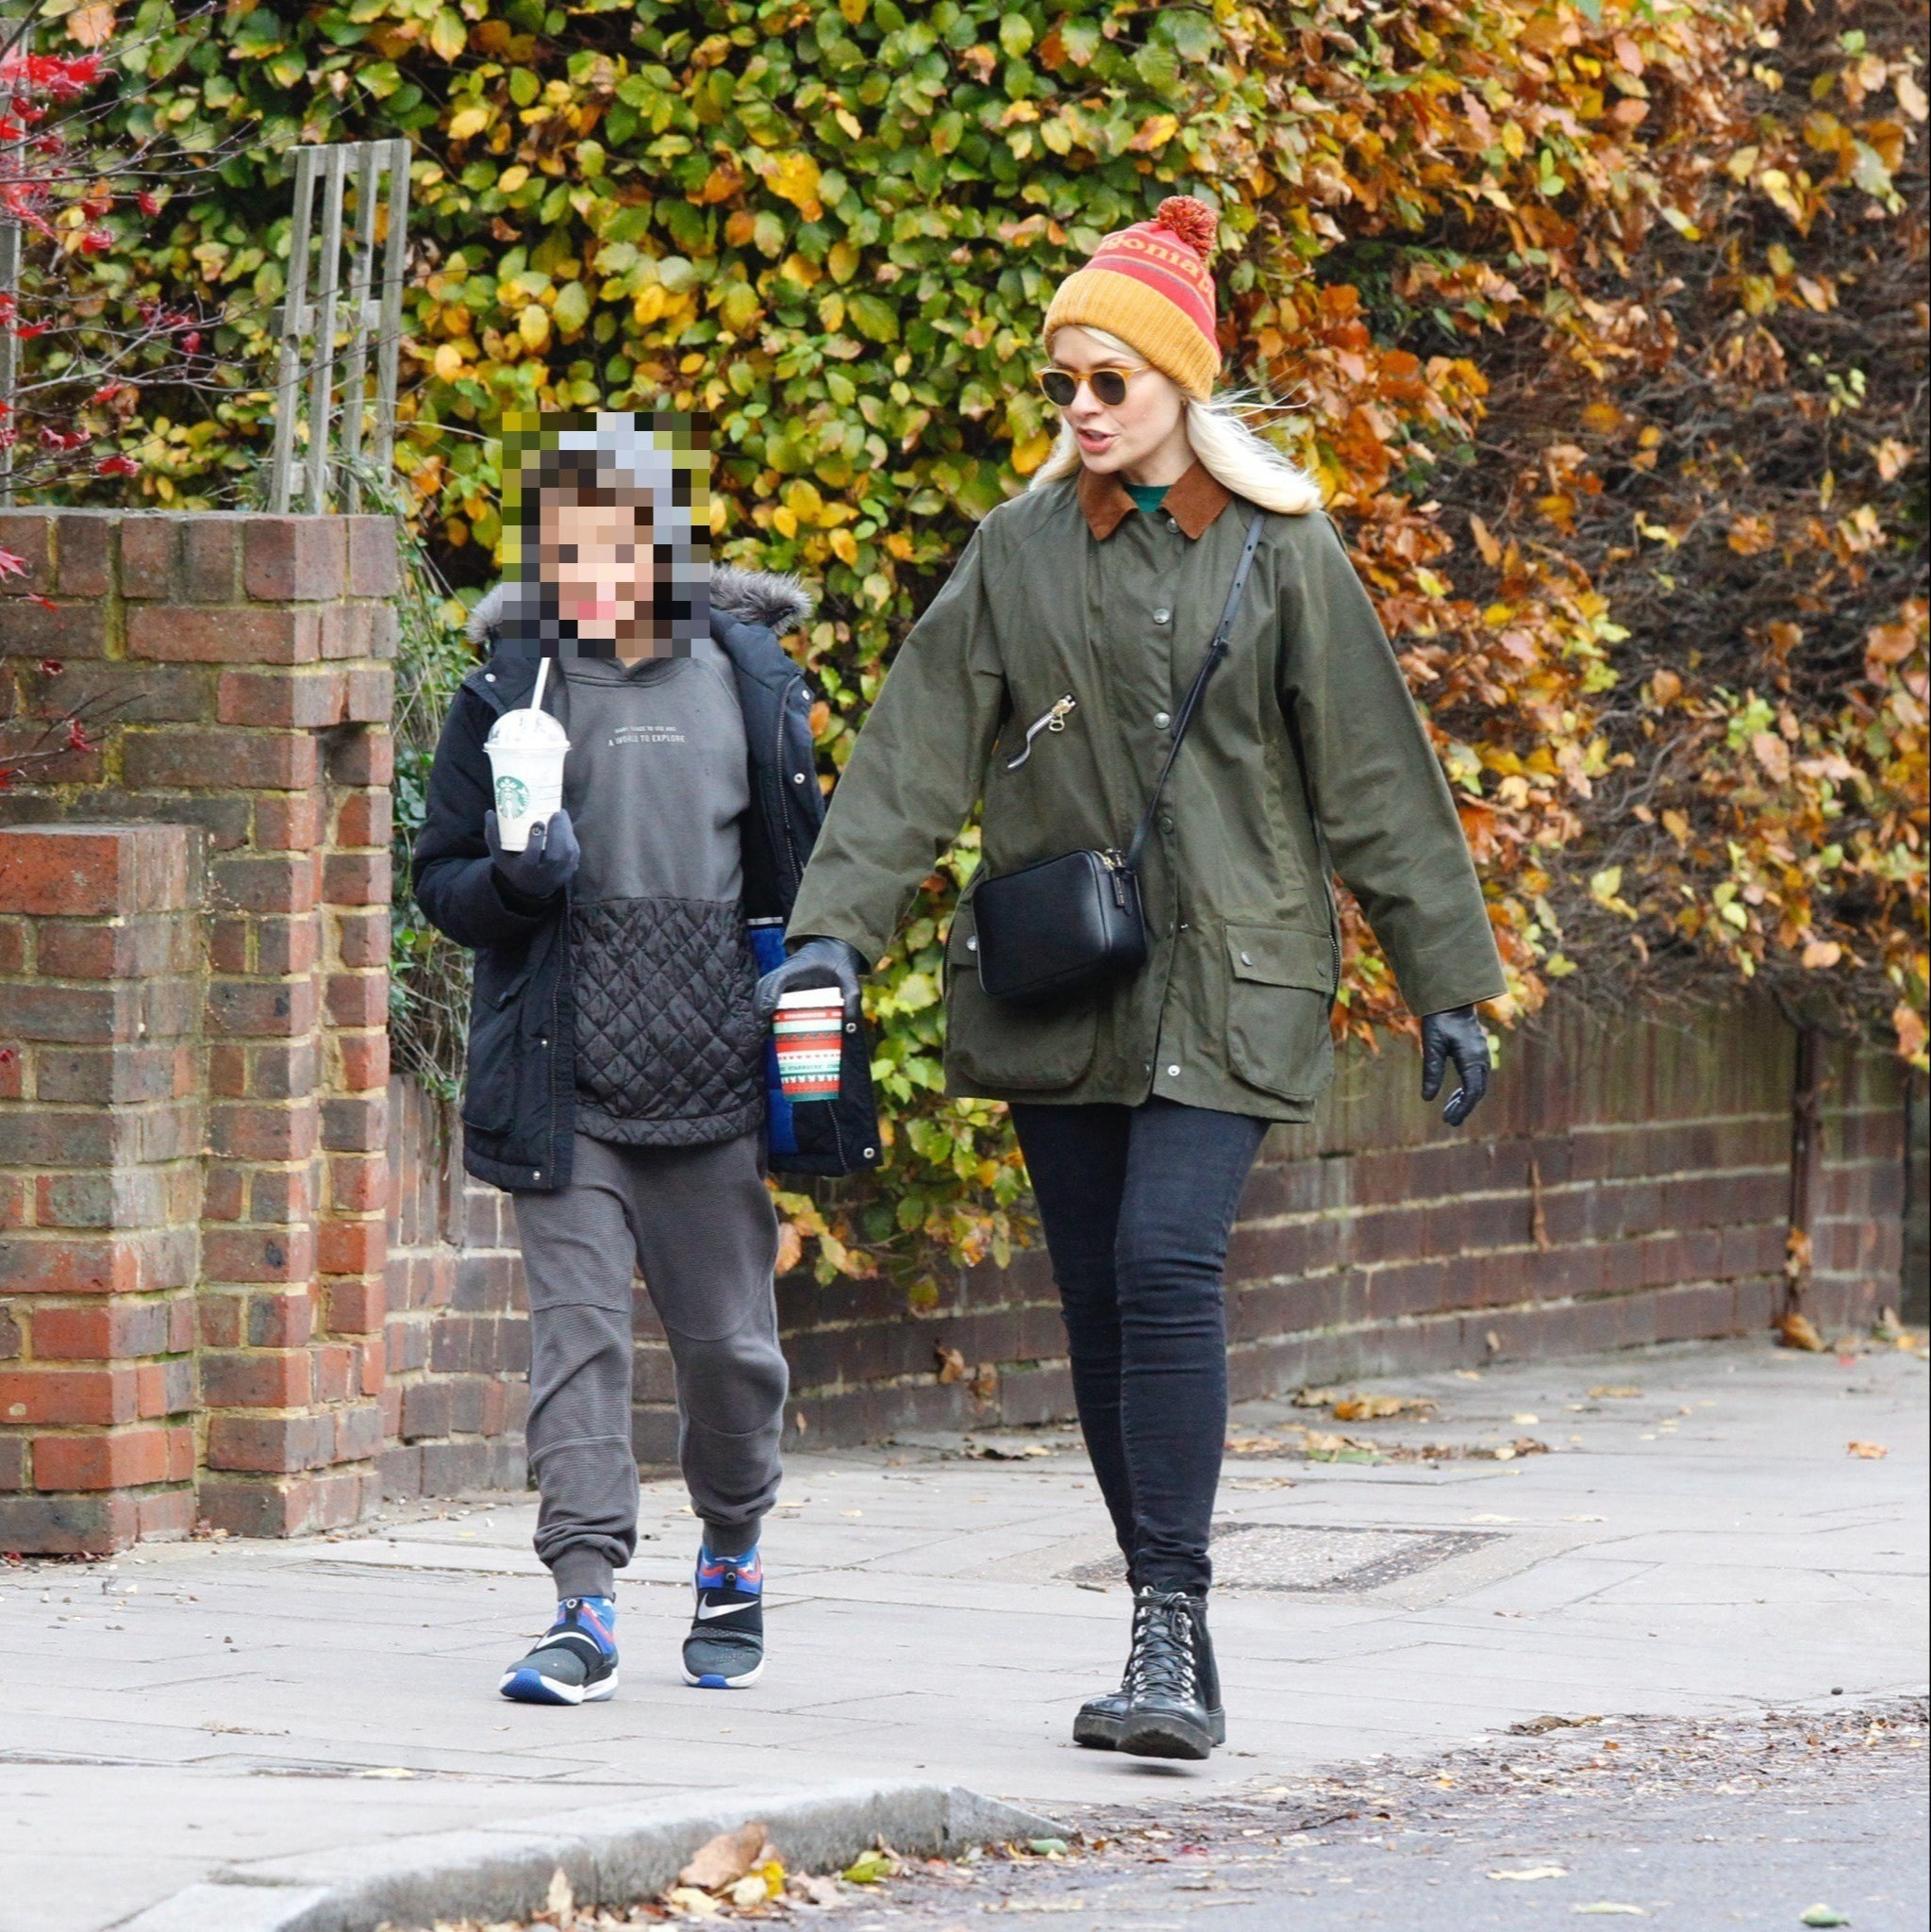 Holly Willoughby heads out with son to grab coffee after missing This Morning due to kids showing Covid-19 symptoms